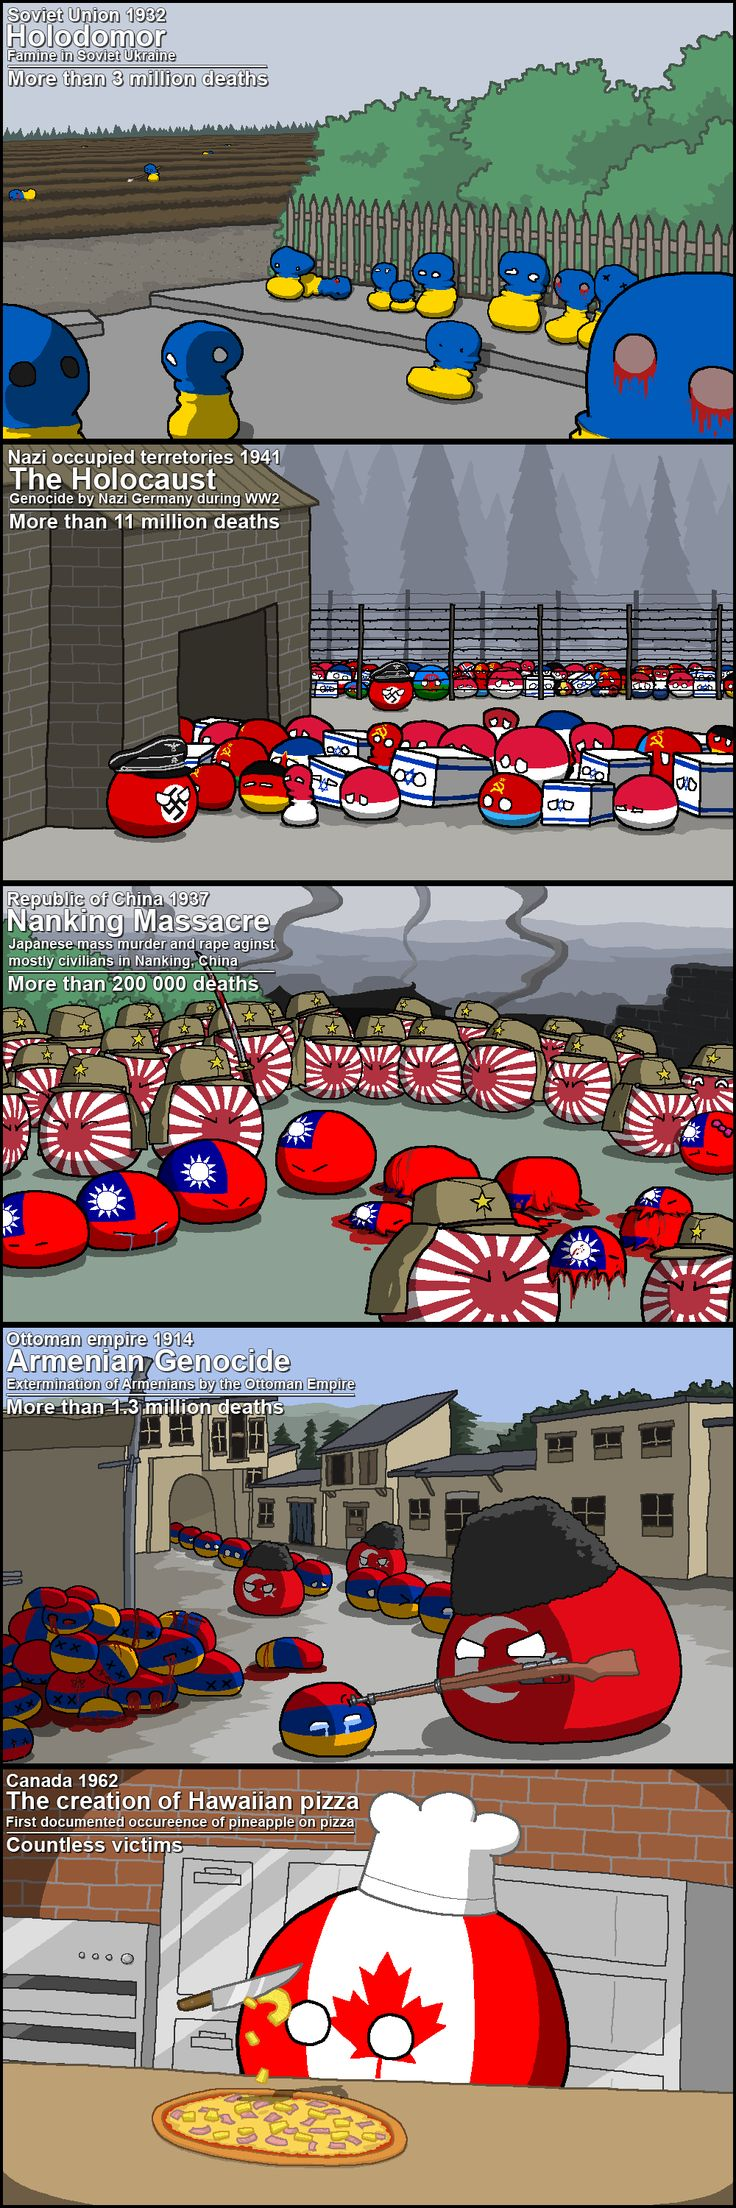 Crimes Against Humanity - Polandball